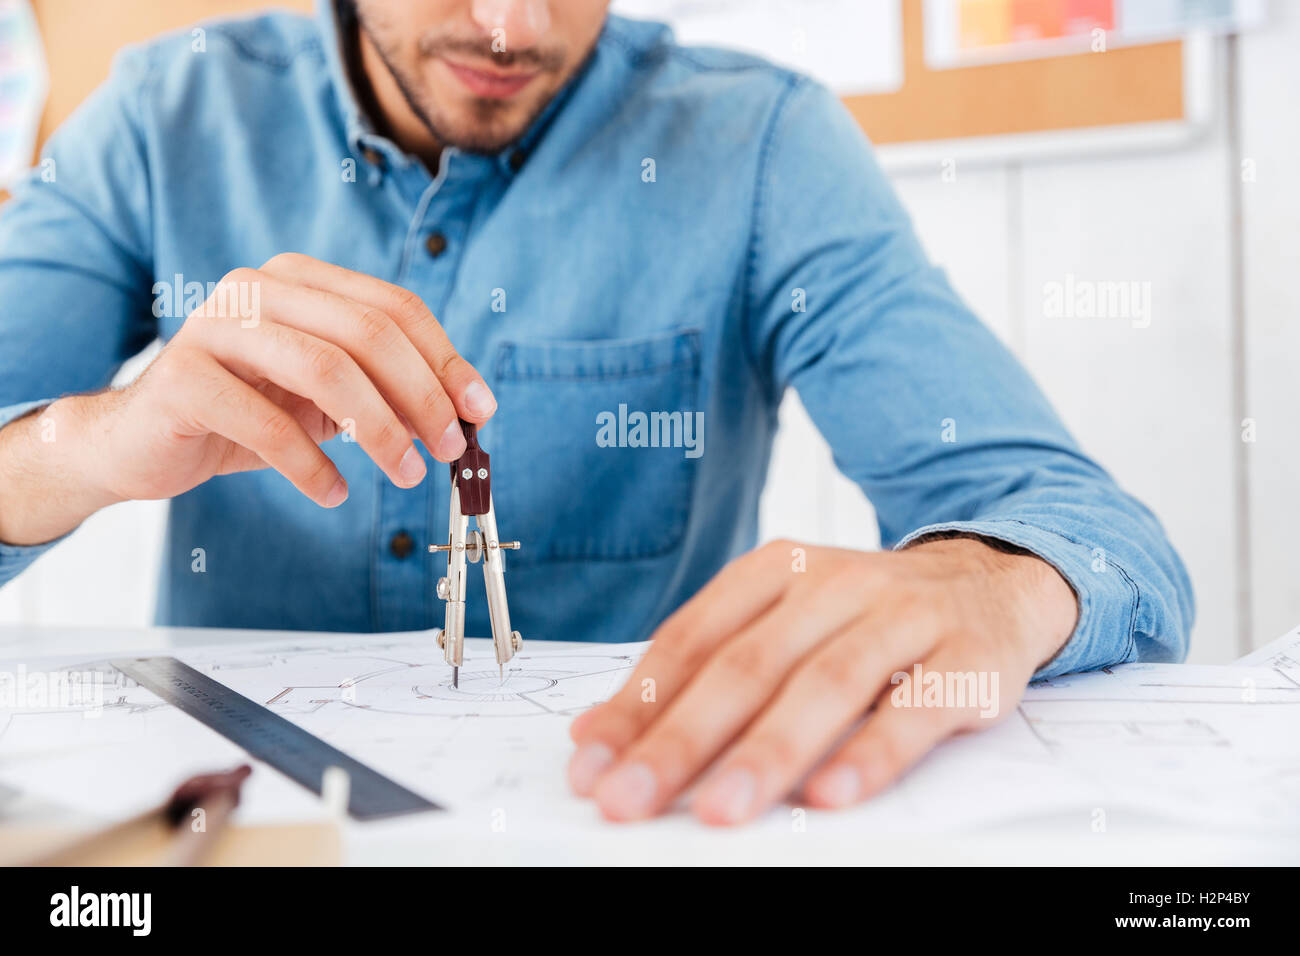 Cropped image of a architect working on construction blueprint in office with divider at office - Stock Image